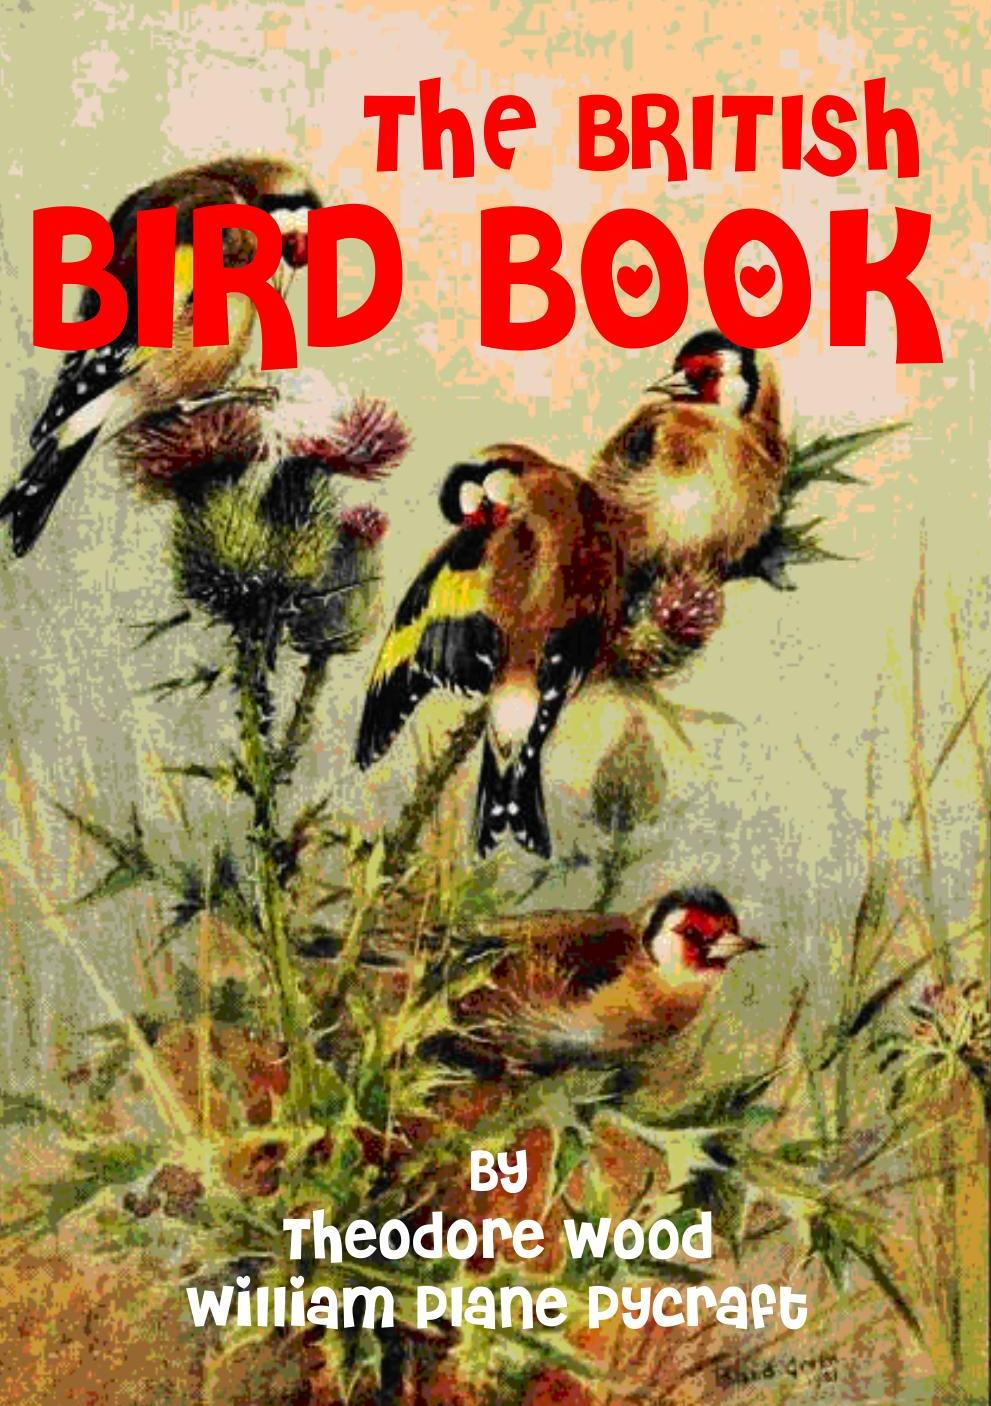 The British bird book